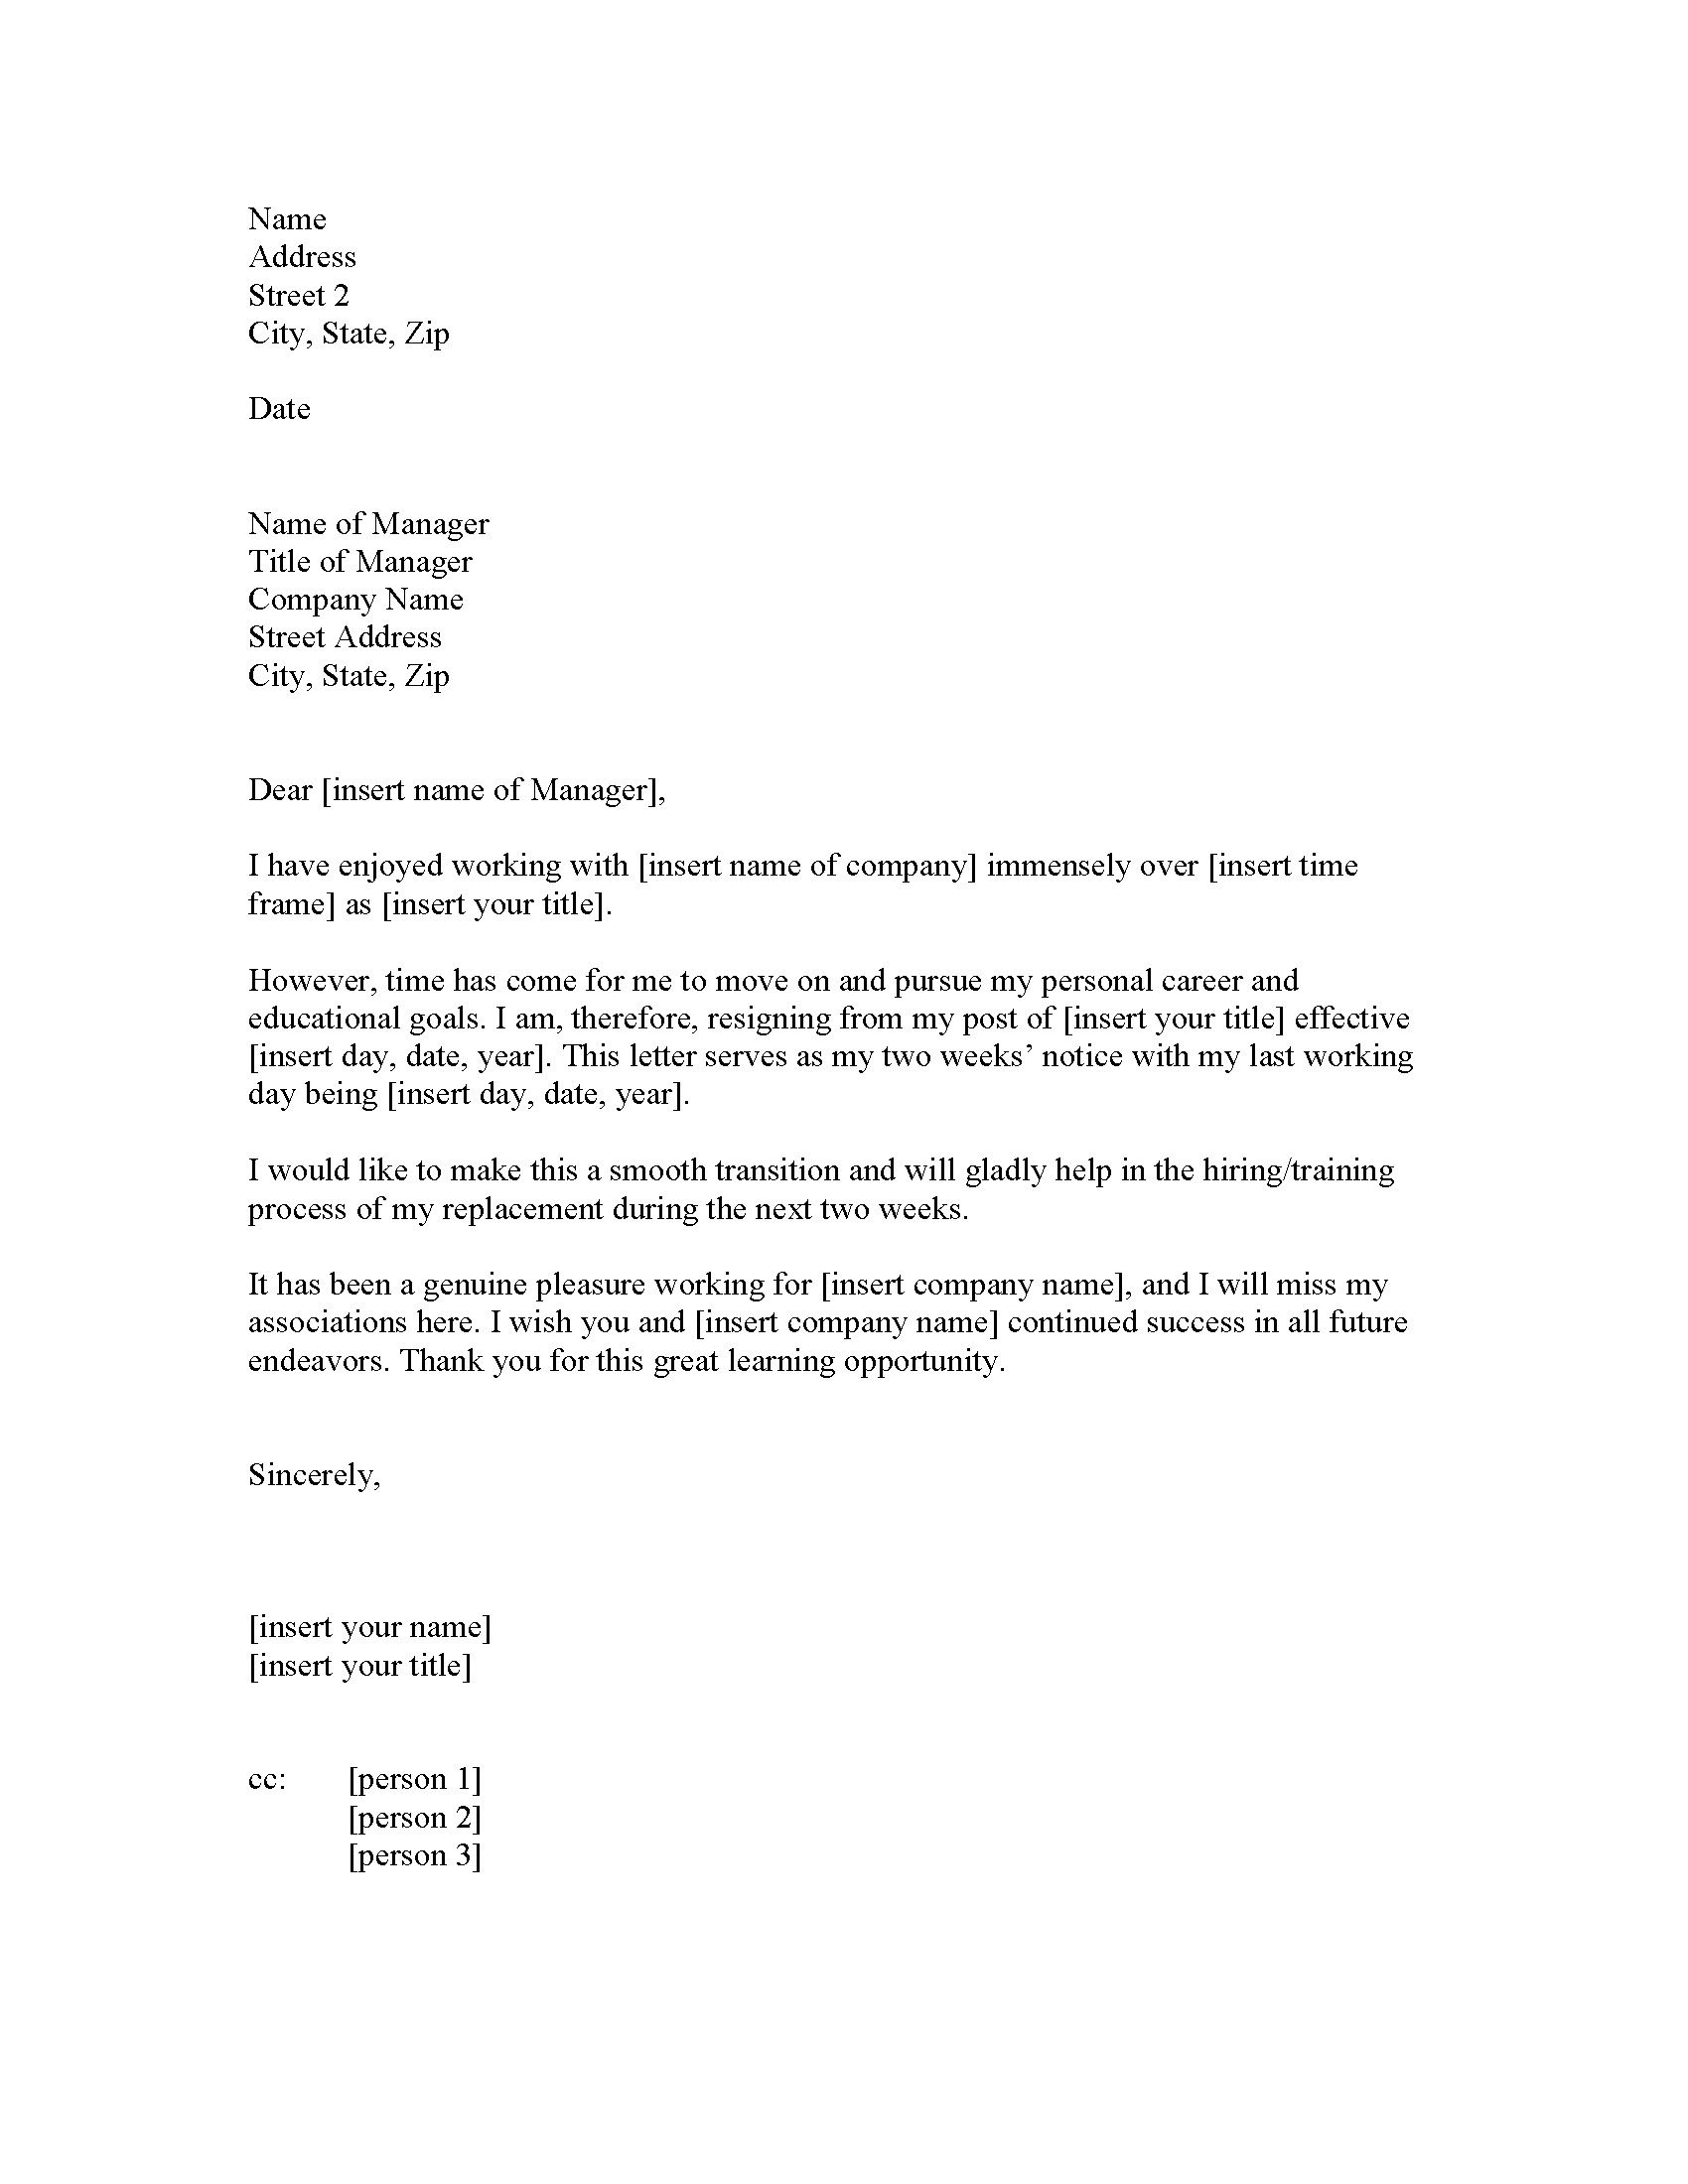 Two Week Resignation Letter Samples Resignation Letter2